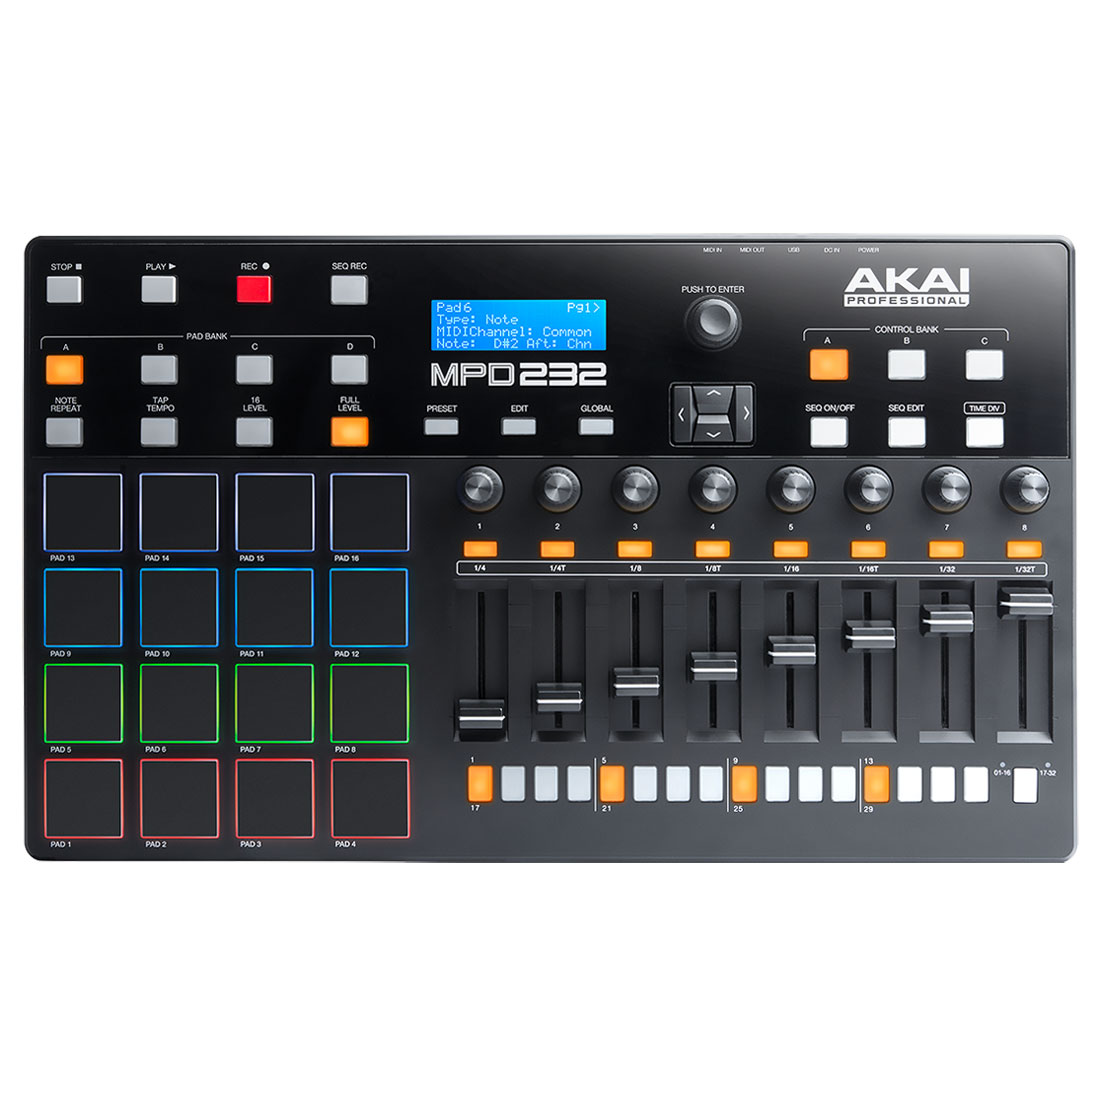 Akai pro mpd232 table de mixage akai professional sur for Table de mixage zmx 52